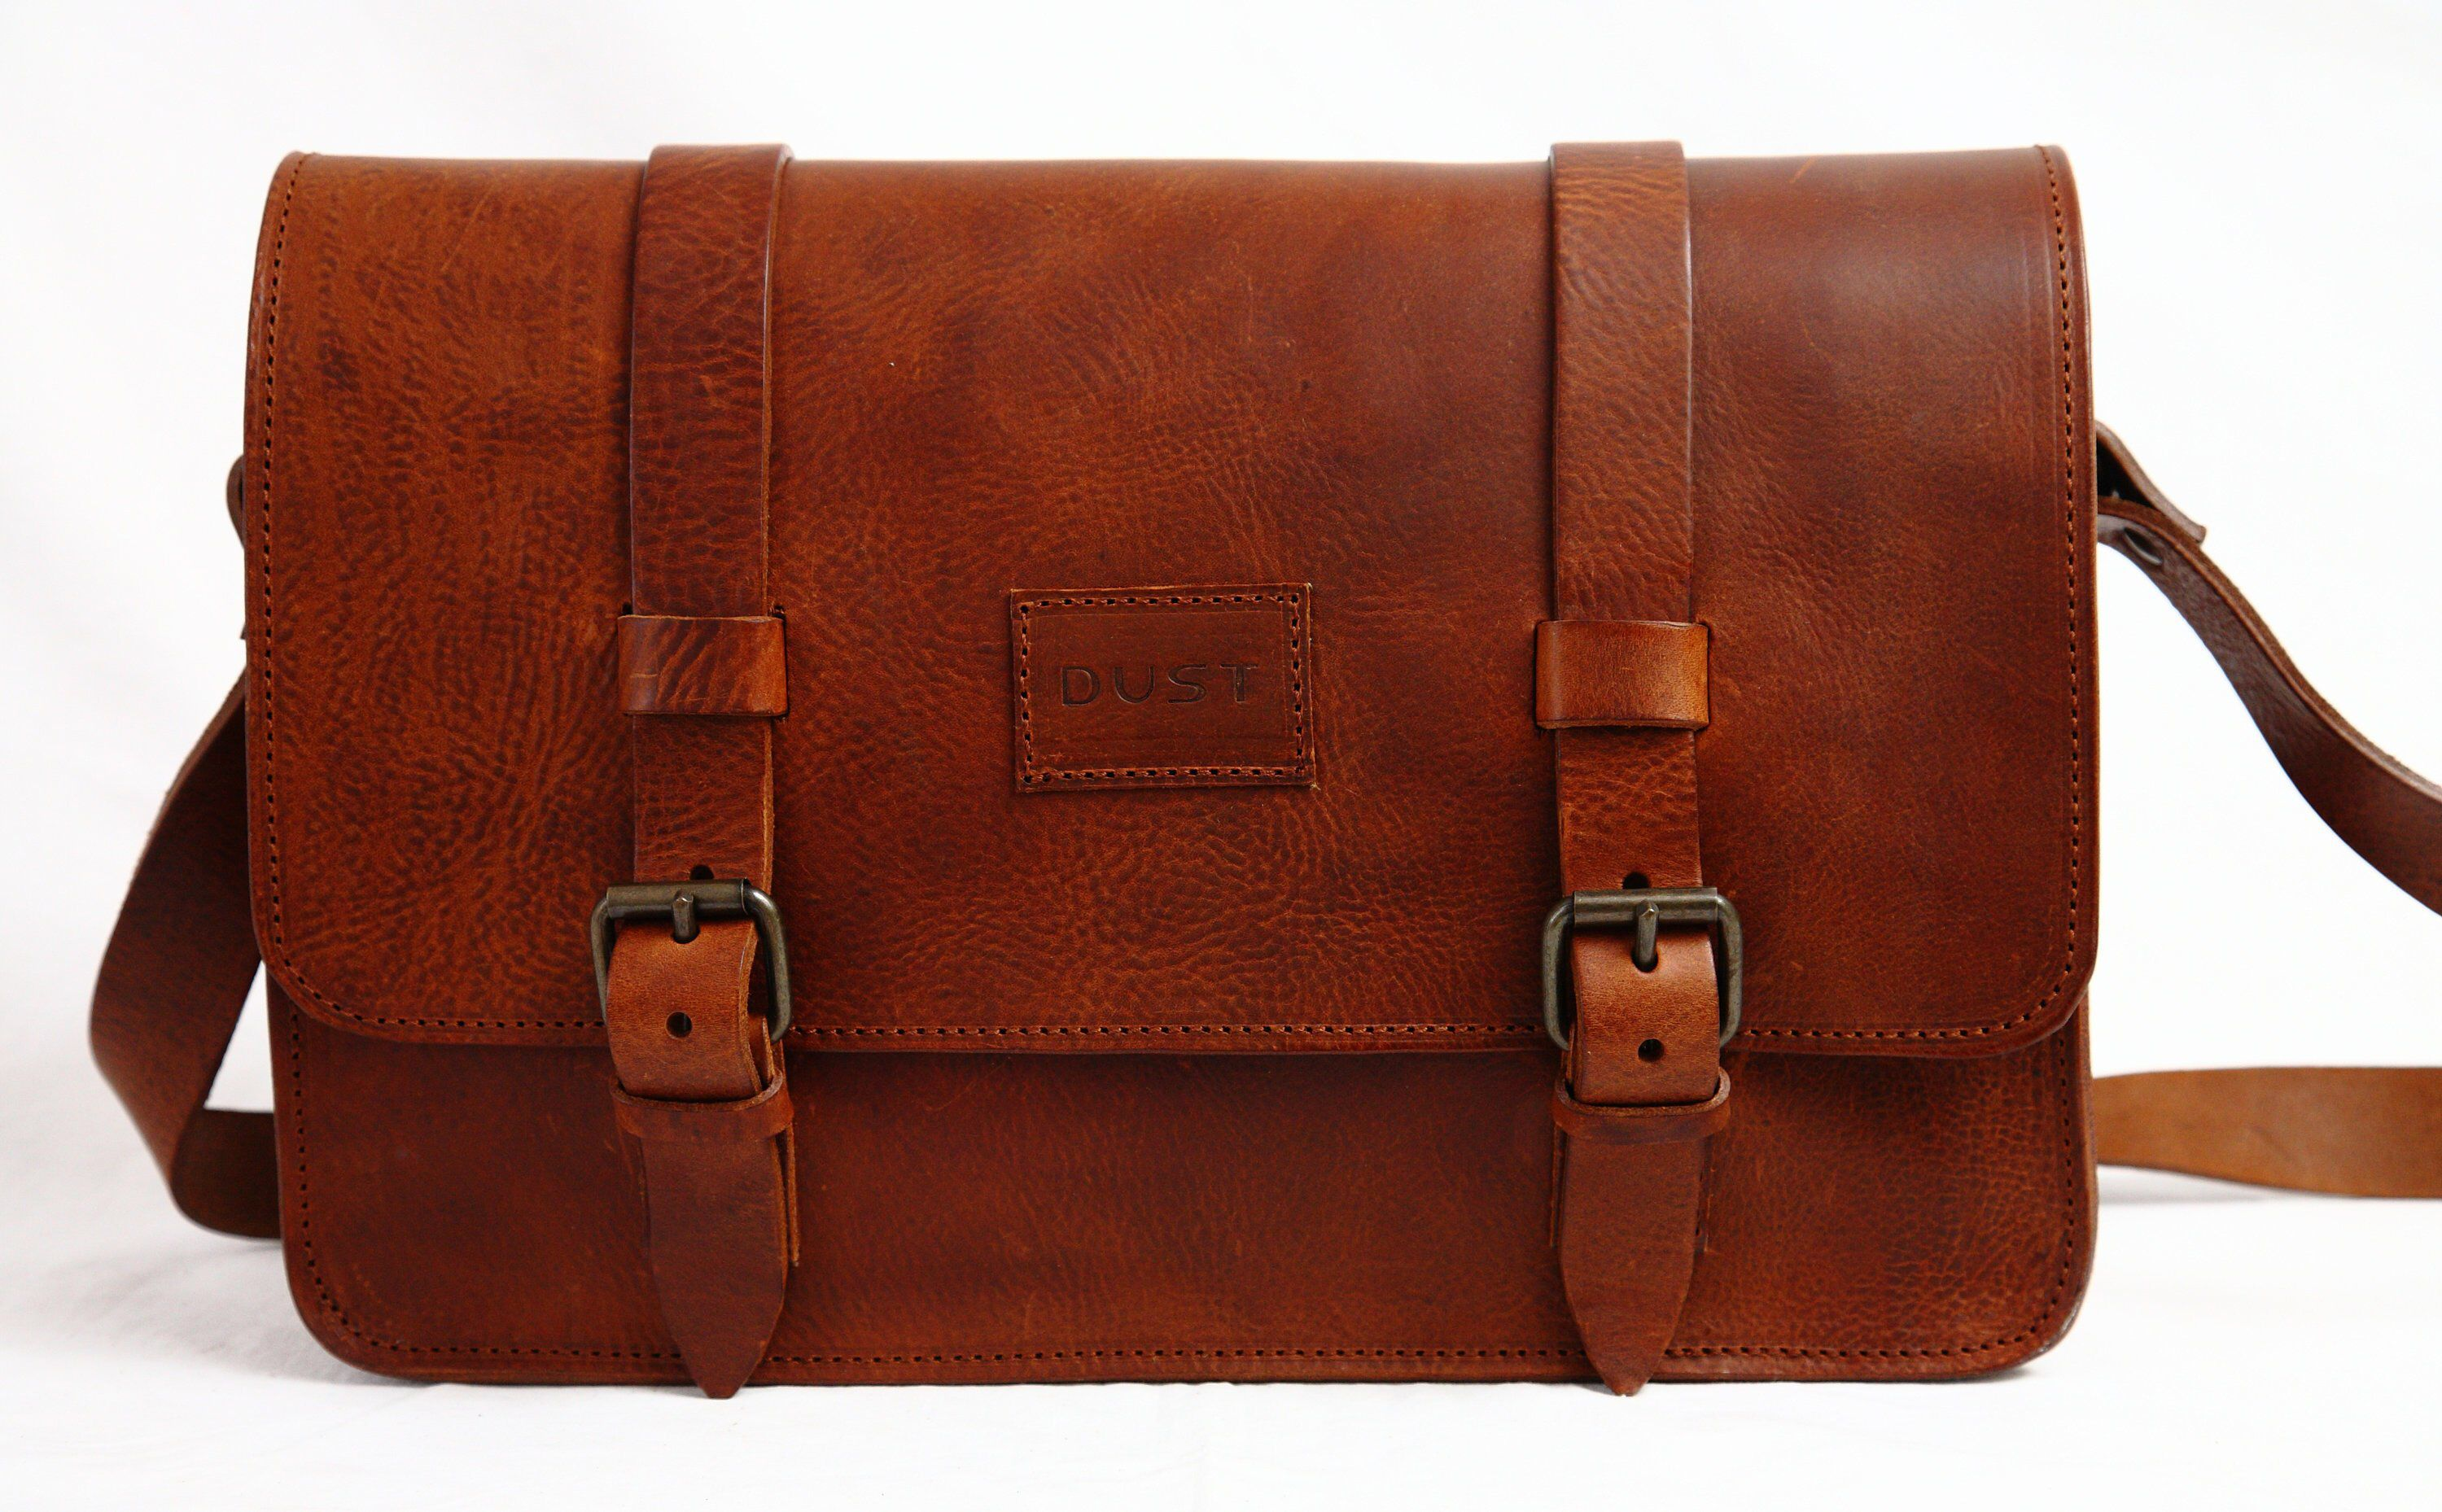 57f125539c Classic Leather Messenger Bag in Old West Brown by THEDUSTCOMPANY on Etsy  https